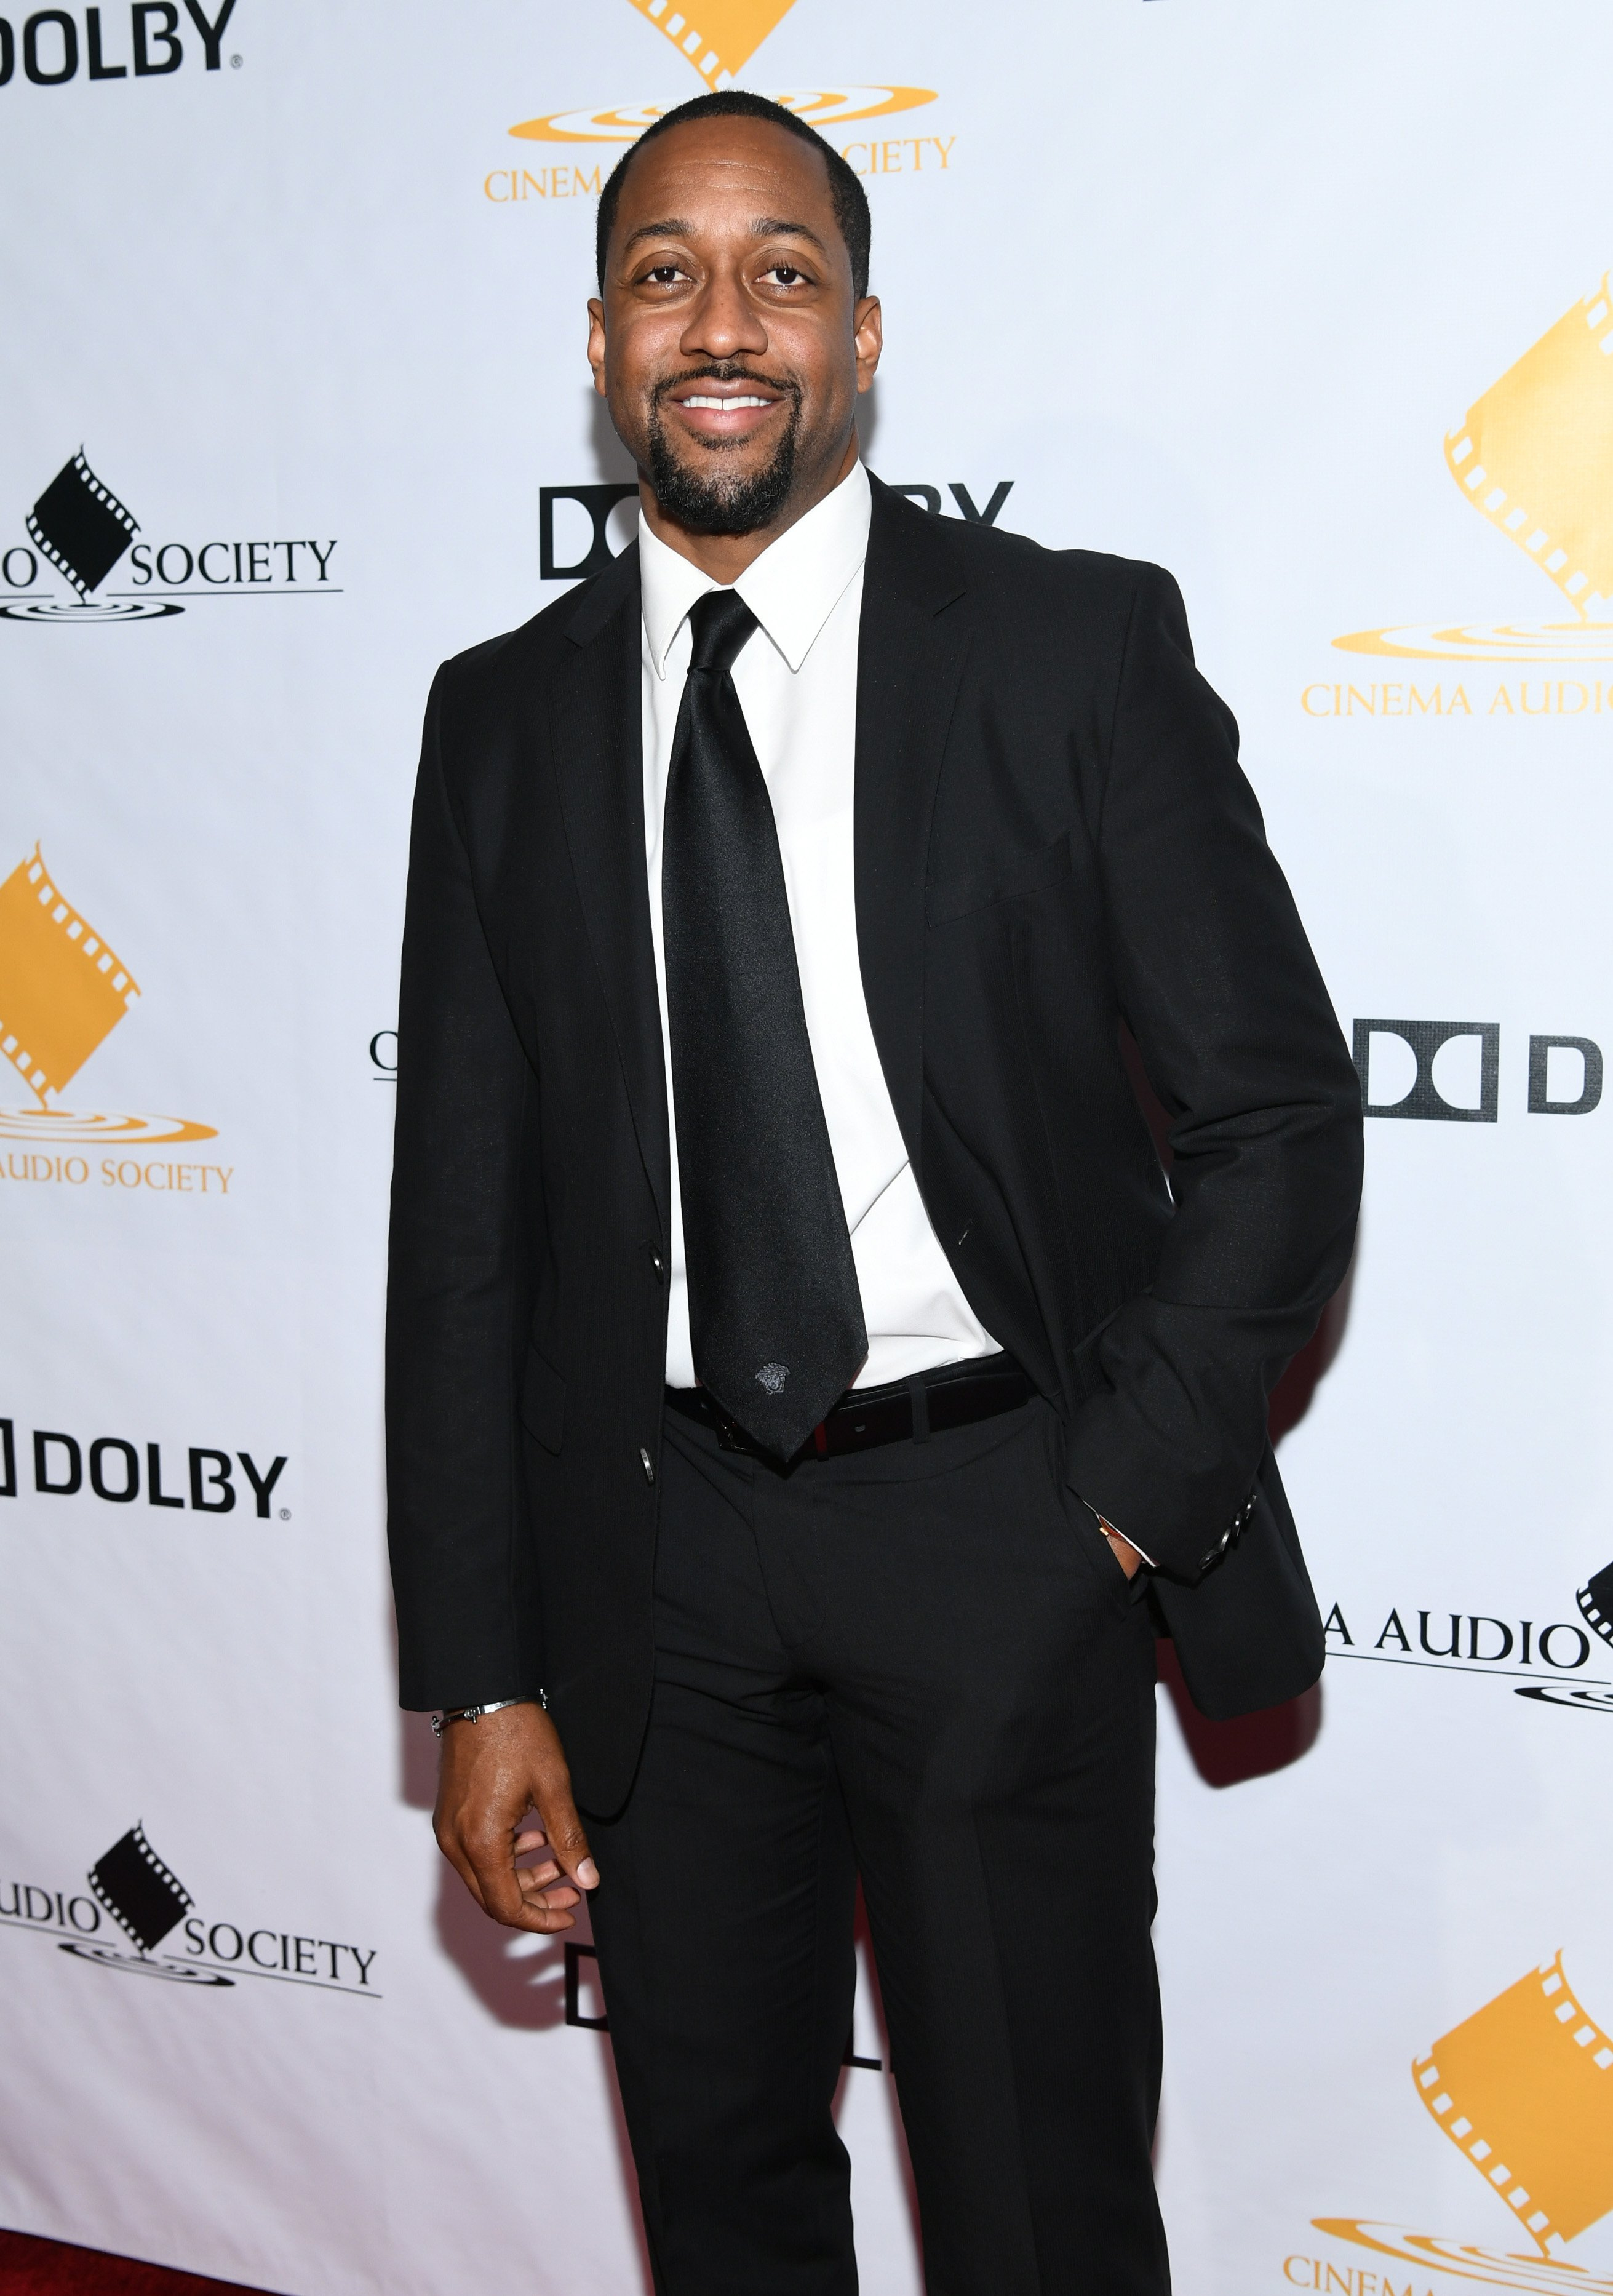 Jaleel White at the 54th annual Cinema Audio Society Awards at Omni Los Angeles Hotel | Source: Getty Images